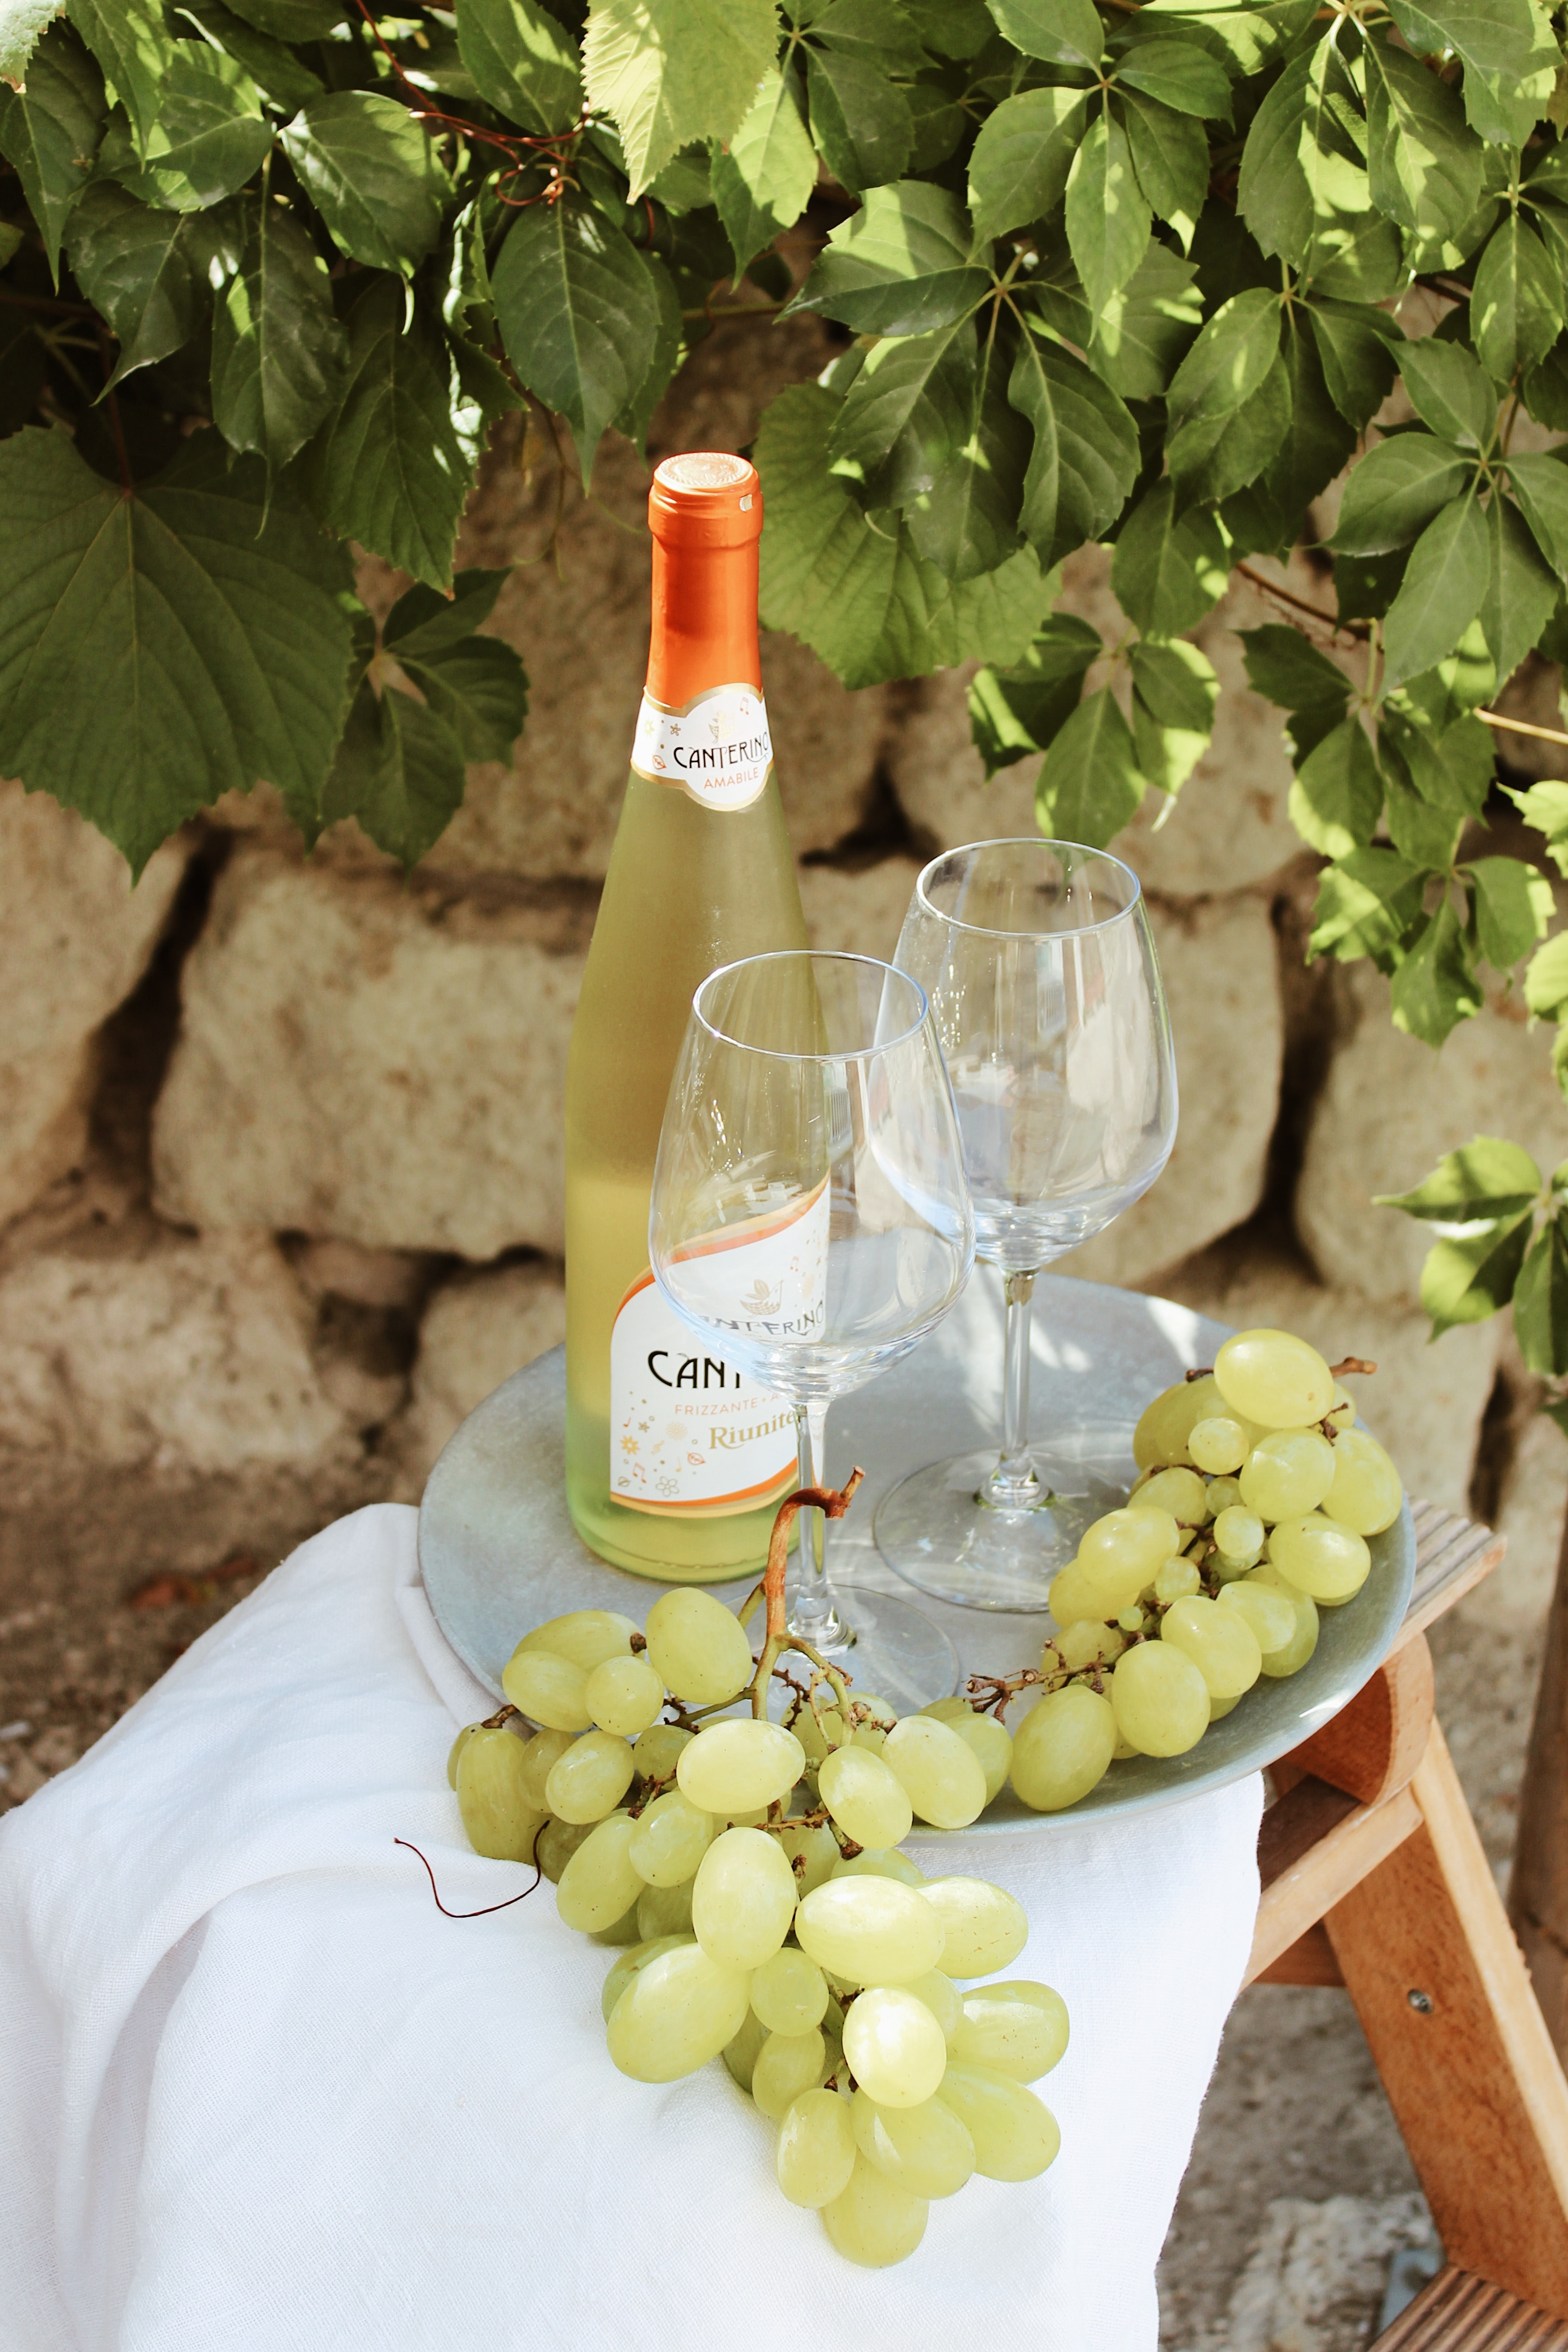 Grape and Wine Festival returns with new regulations